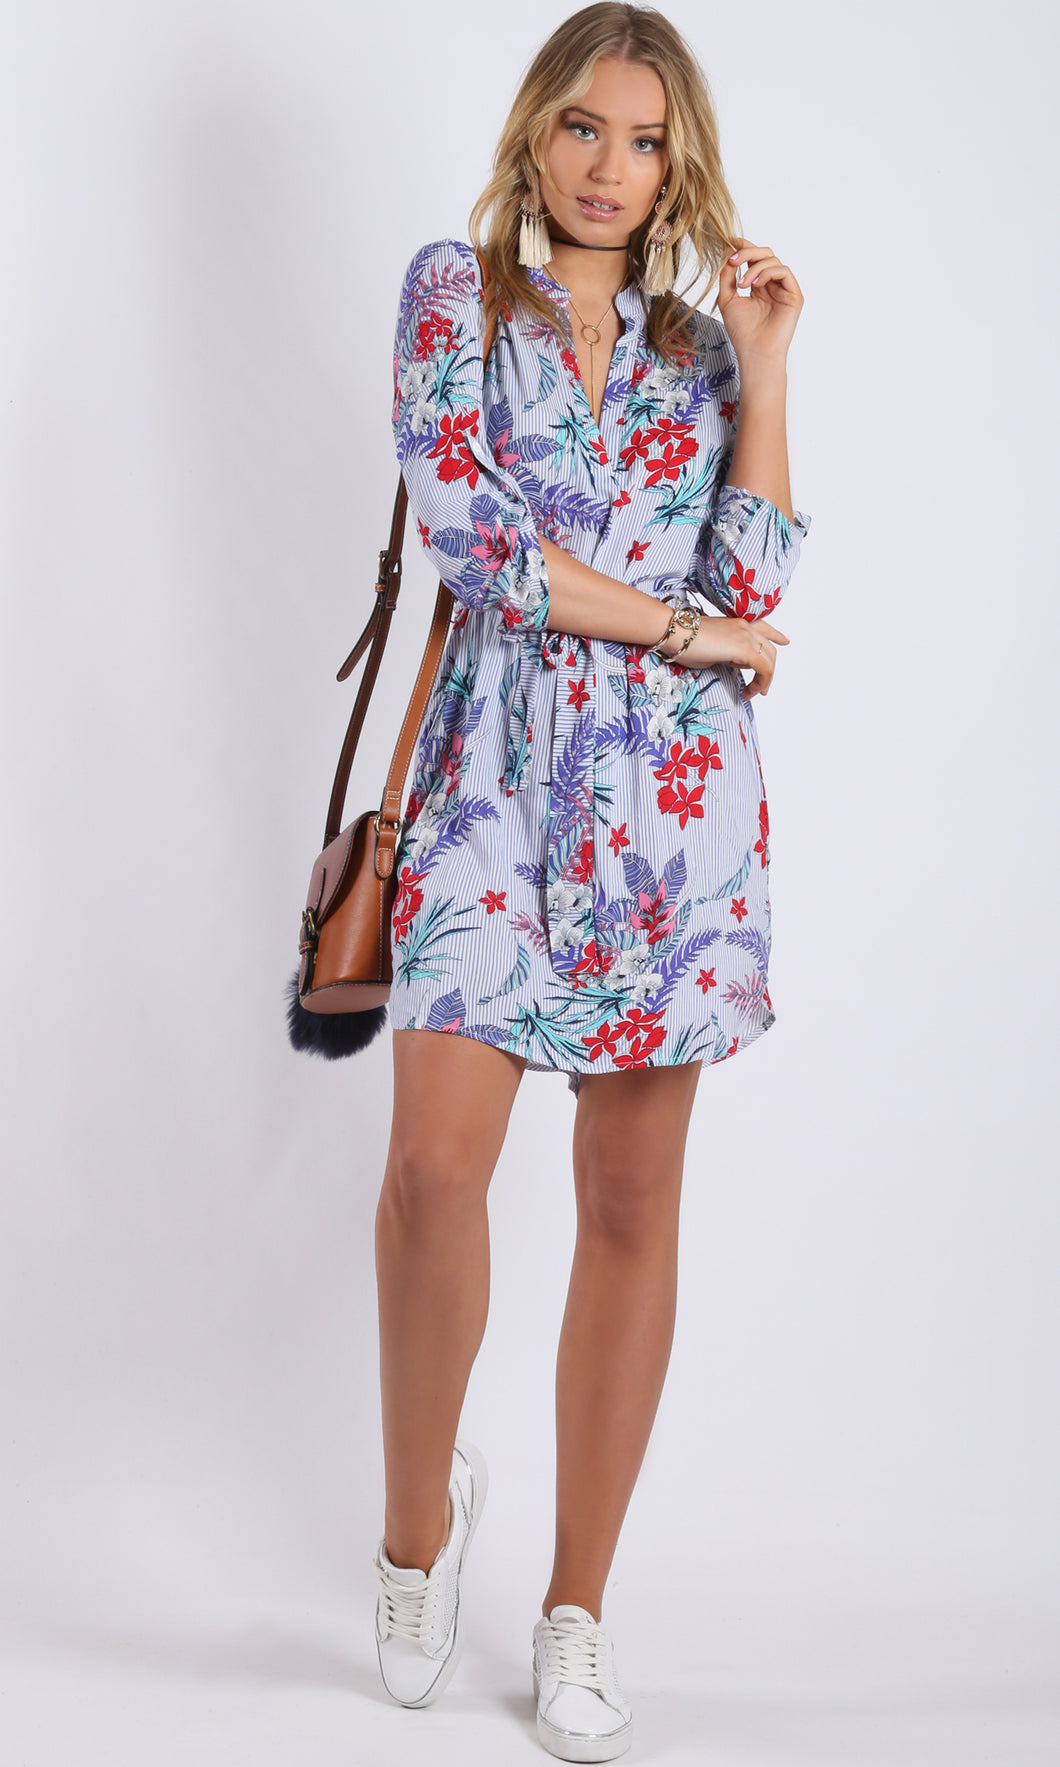 Johnny Collar Blue Pinstripe Floral Printed Dress